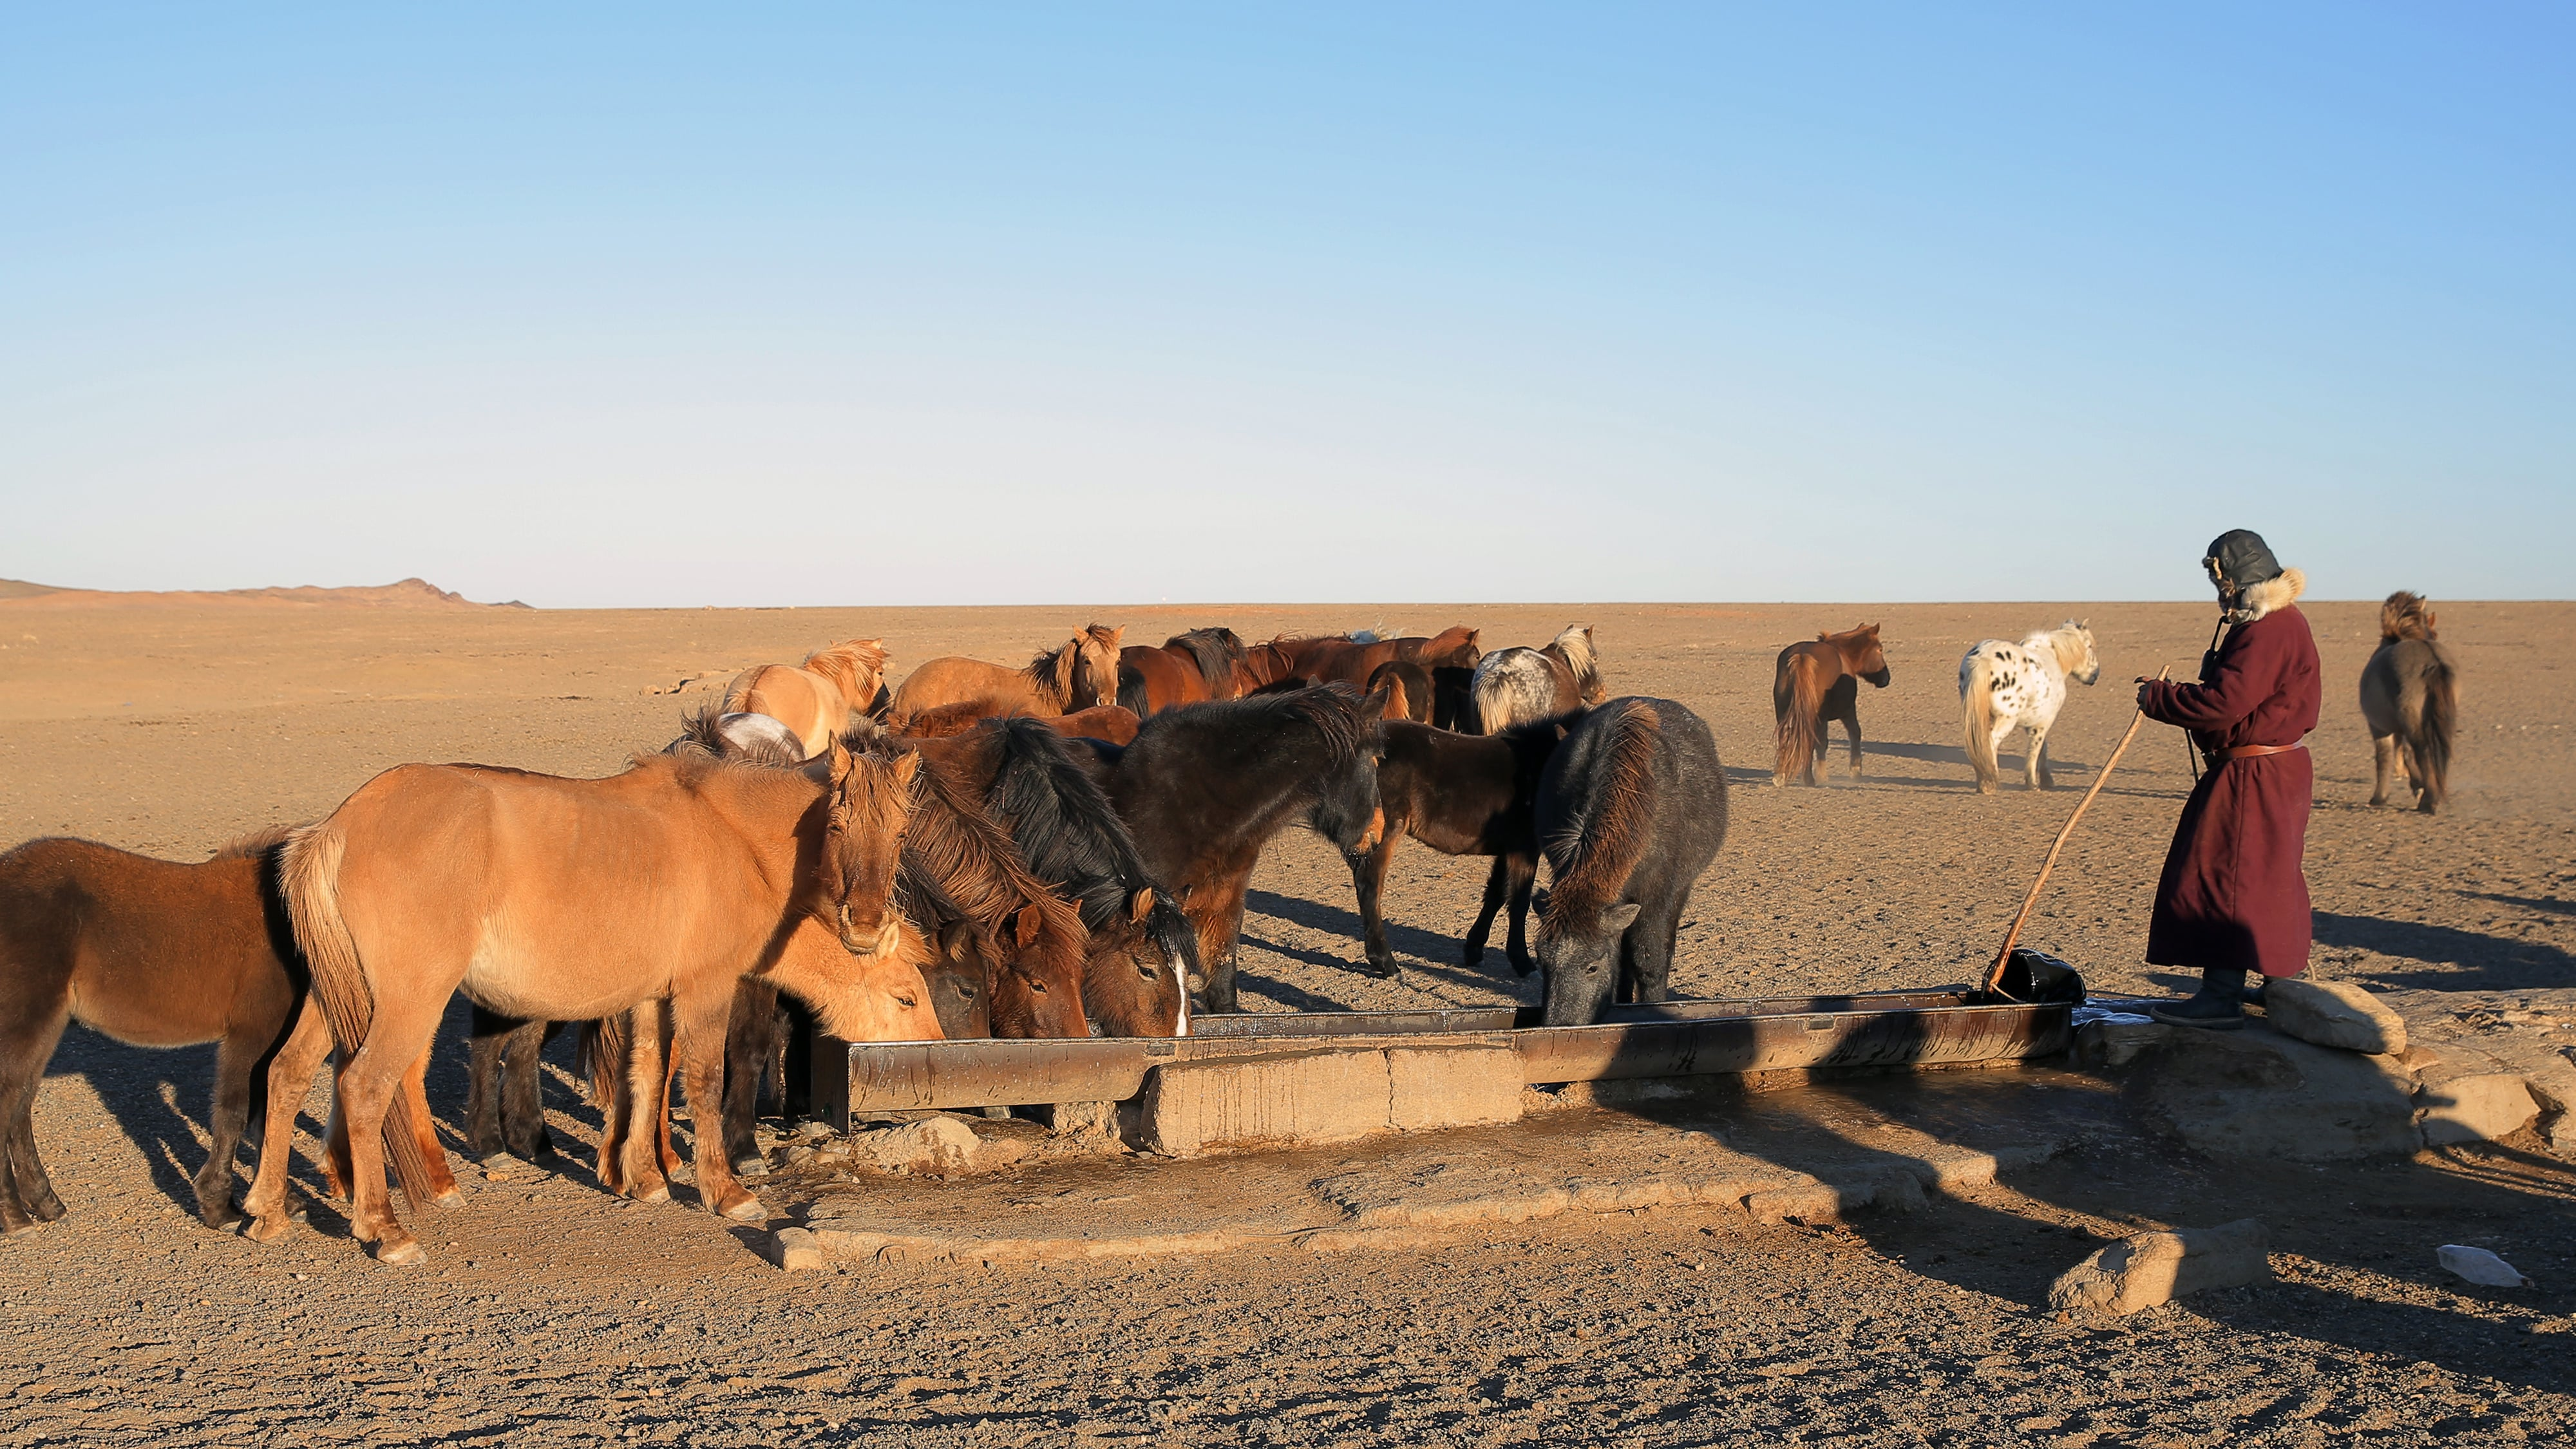 Herders rely on shallow groundwater springs and wells for their animals